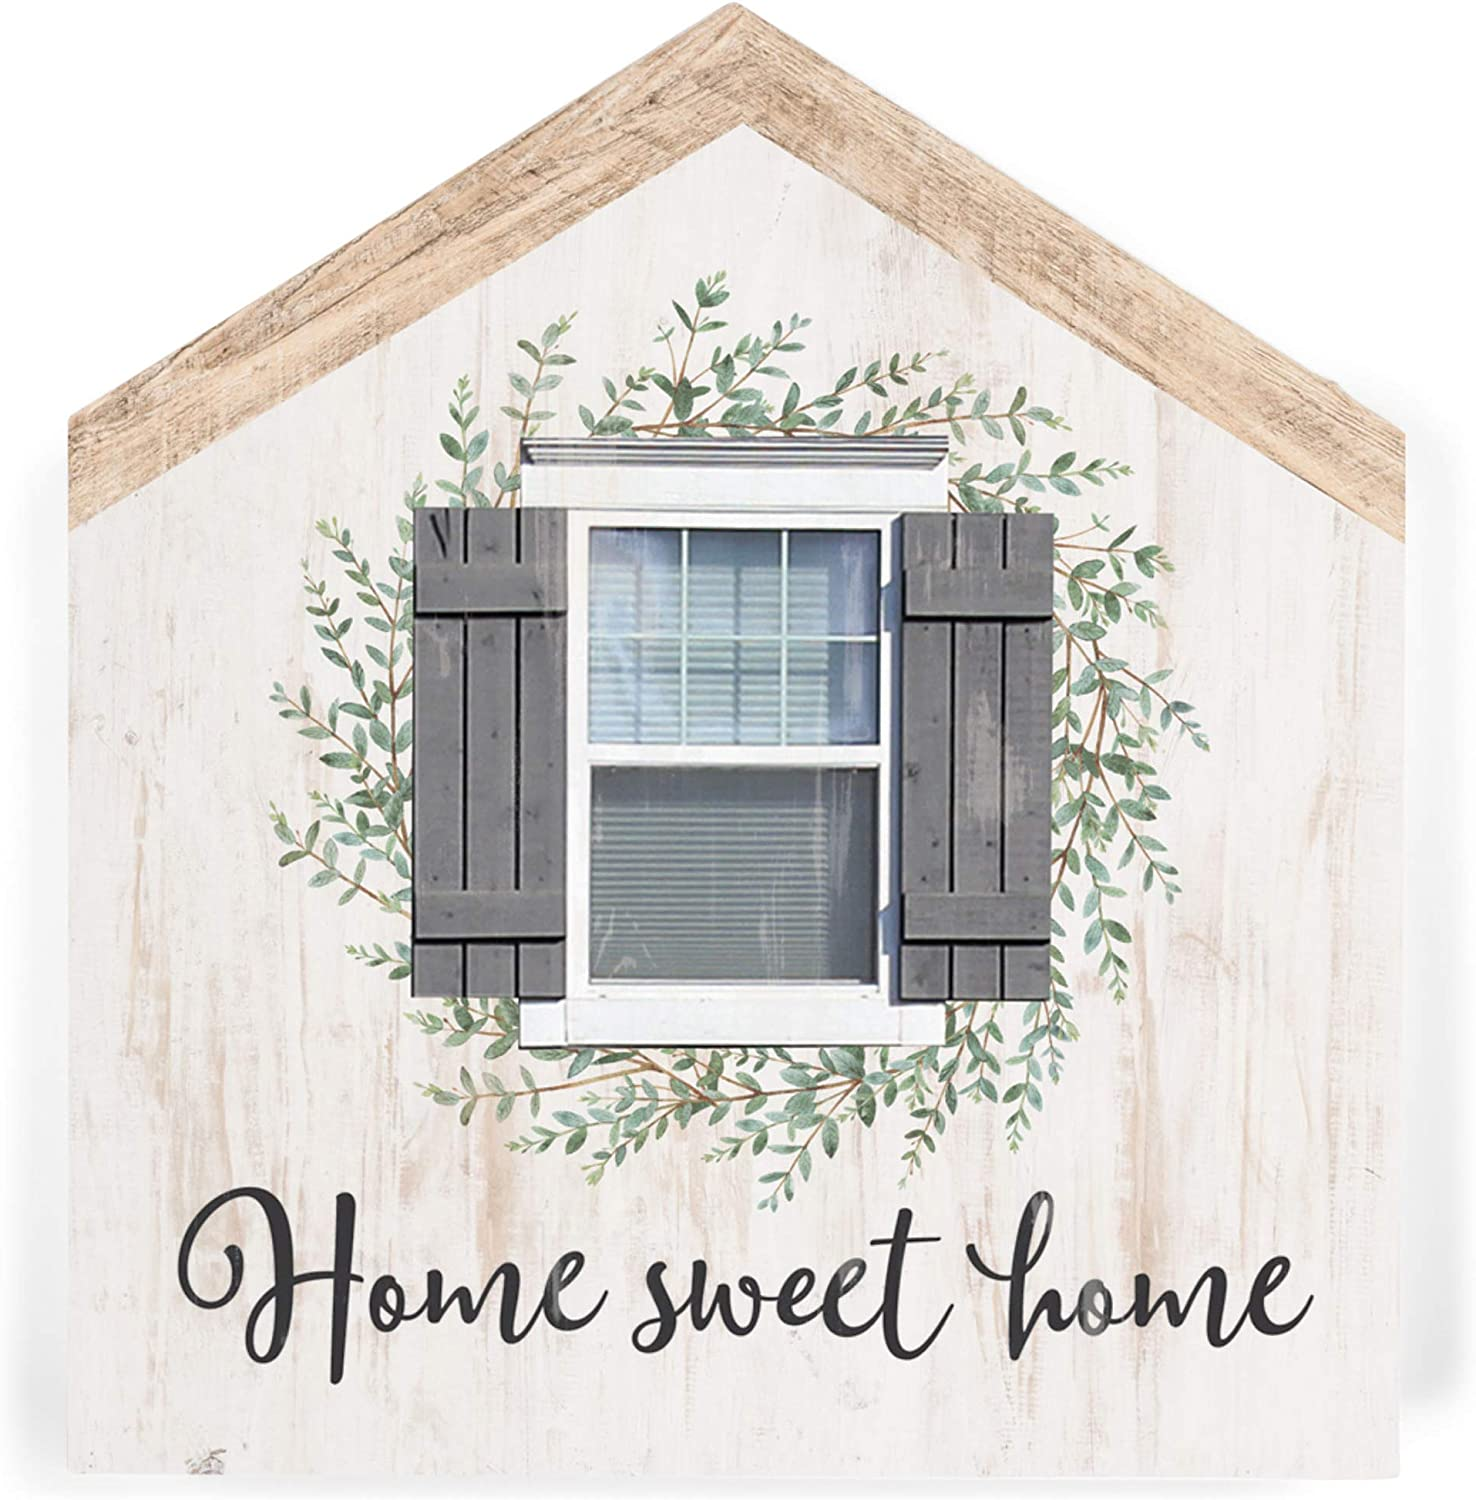 P. Graham Dunn Home Sweet Home House Shaped 5.5 x 6 Inch Pine Wood Block Tabletop Sign